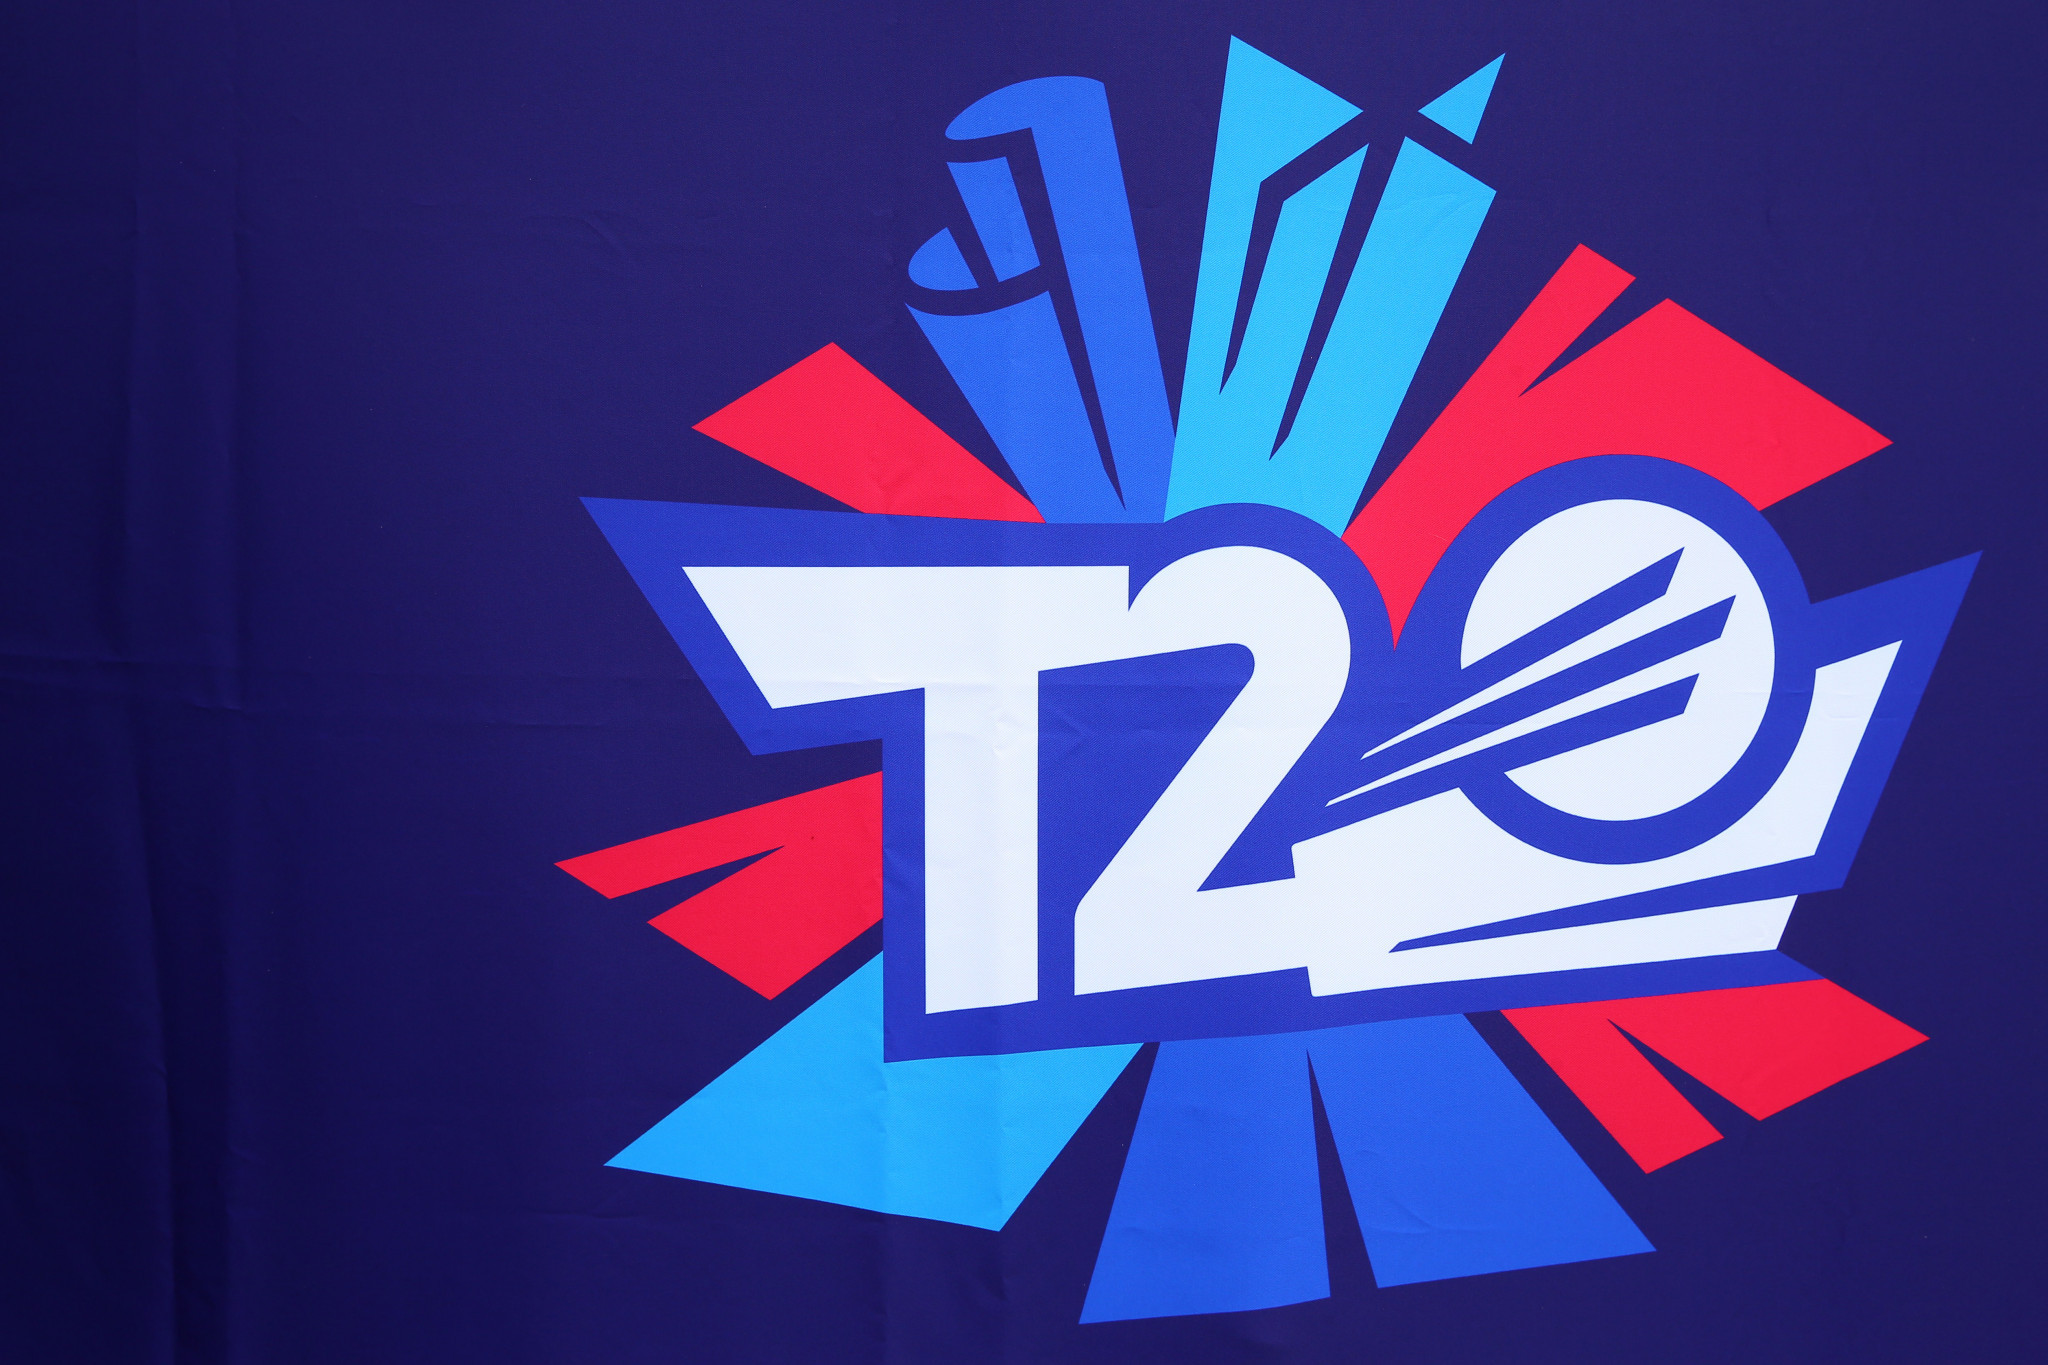 Fans must wear masks at T20 World Cup and 10-day isolation for positive tests